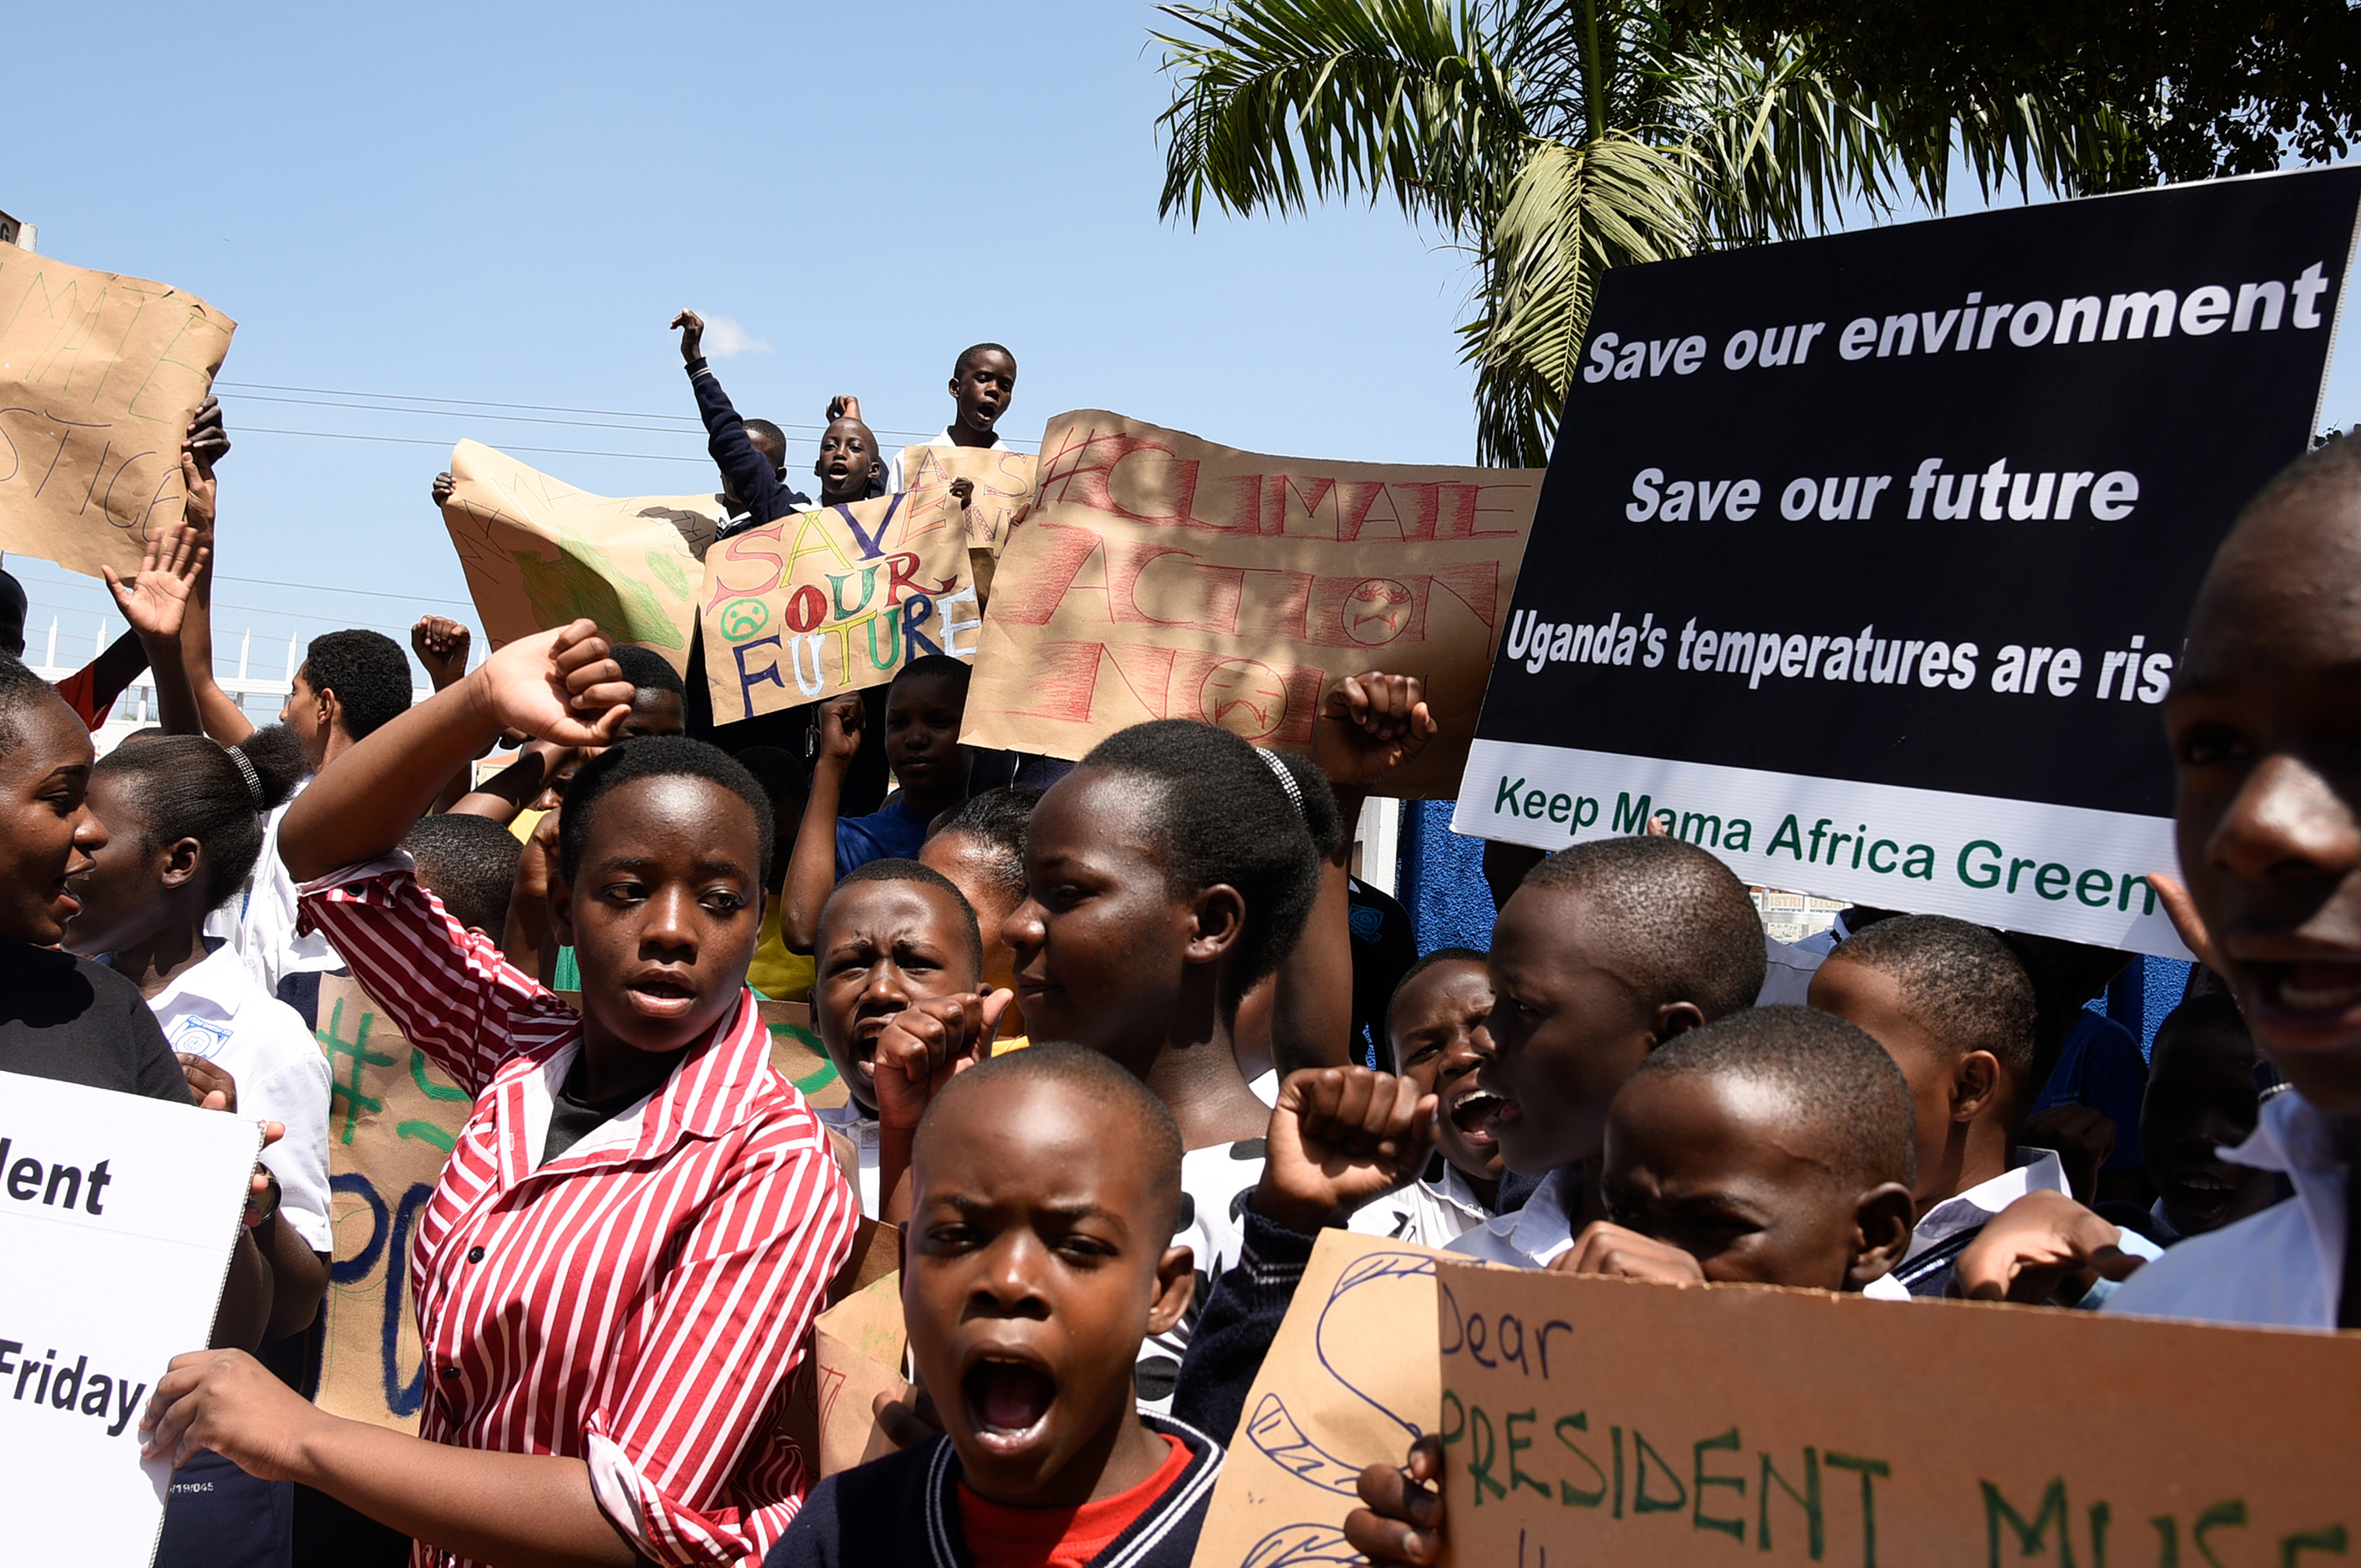 Students hold placards during a strike as part of a global day of student protests aiming to spark world leaders into action on climate change, in Kampala, Uganda on March 15, 2019.